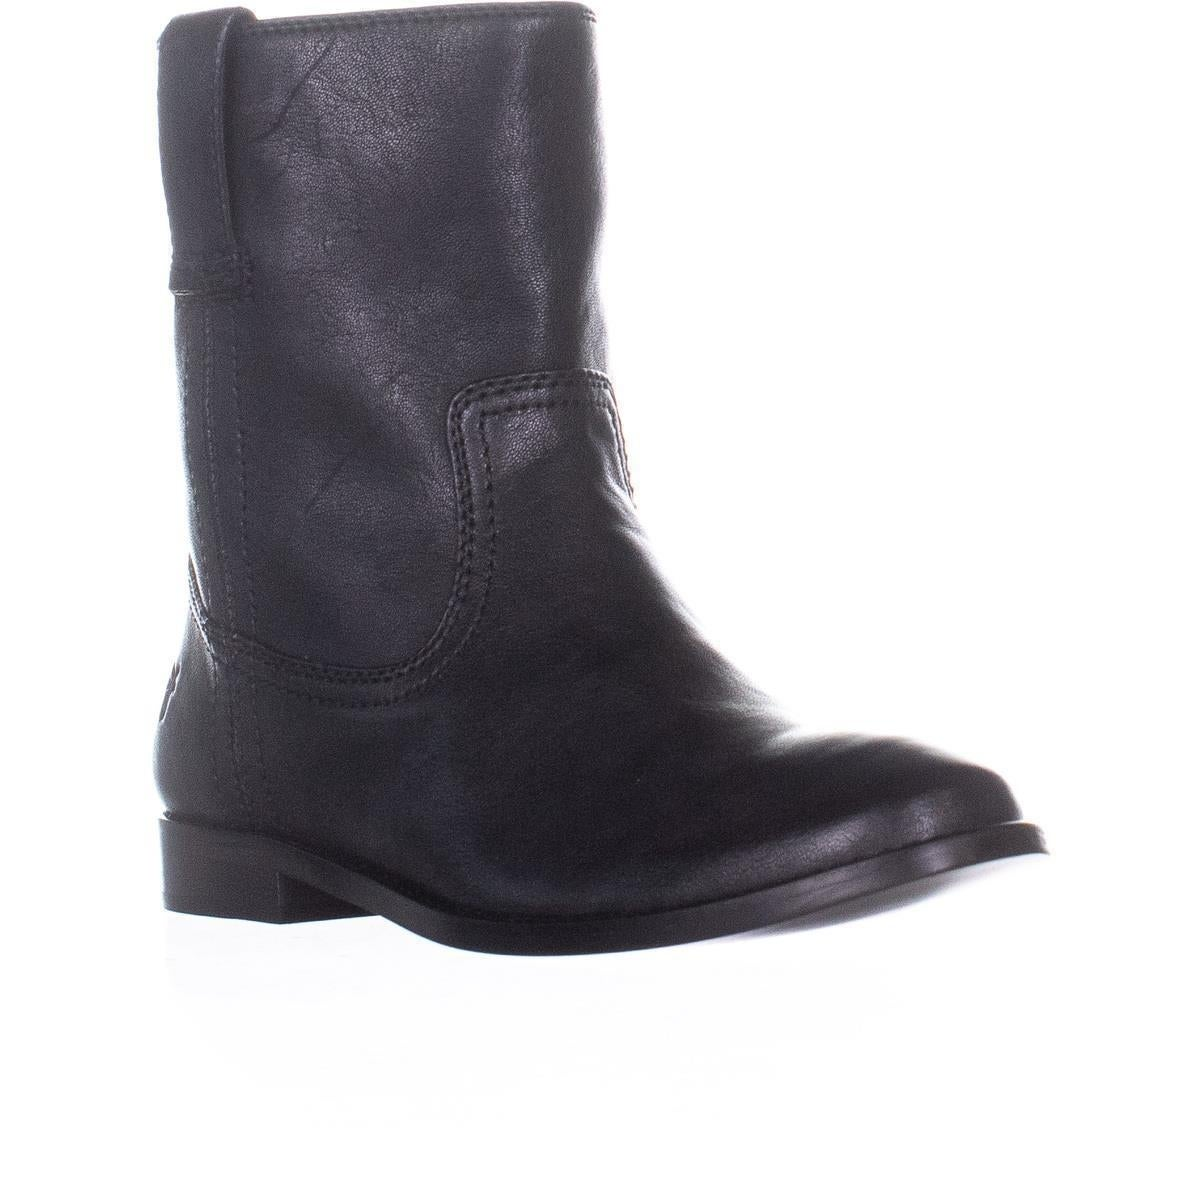 84637930f48 Buy Frye Women's Boots Online at Overstock   Our Best Women's Shoes ...